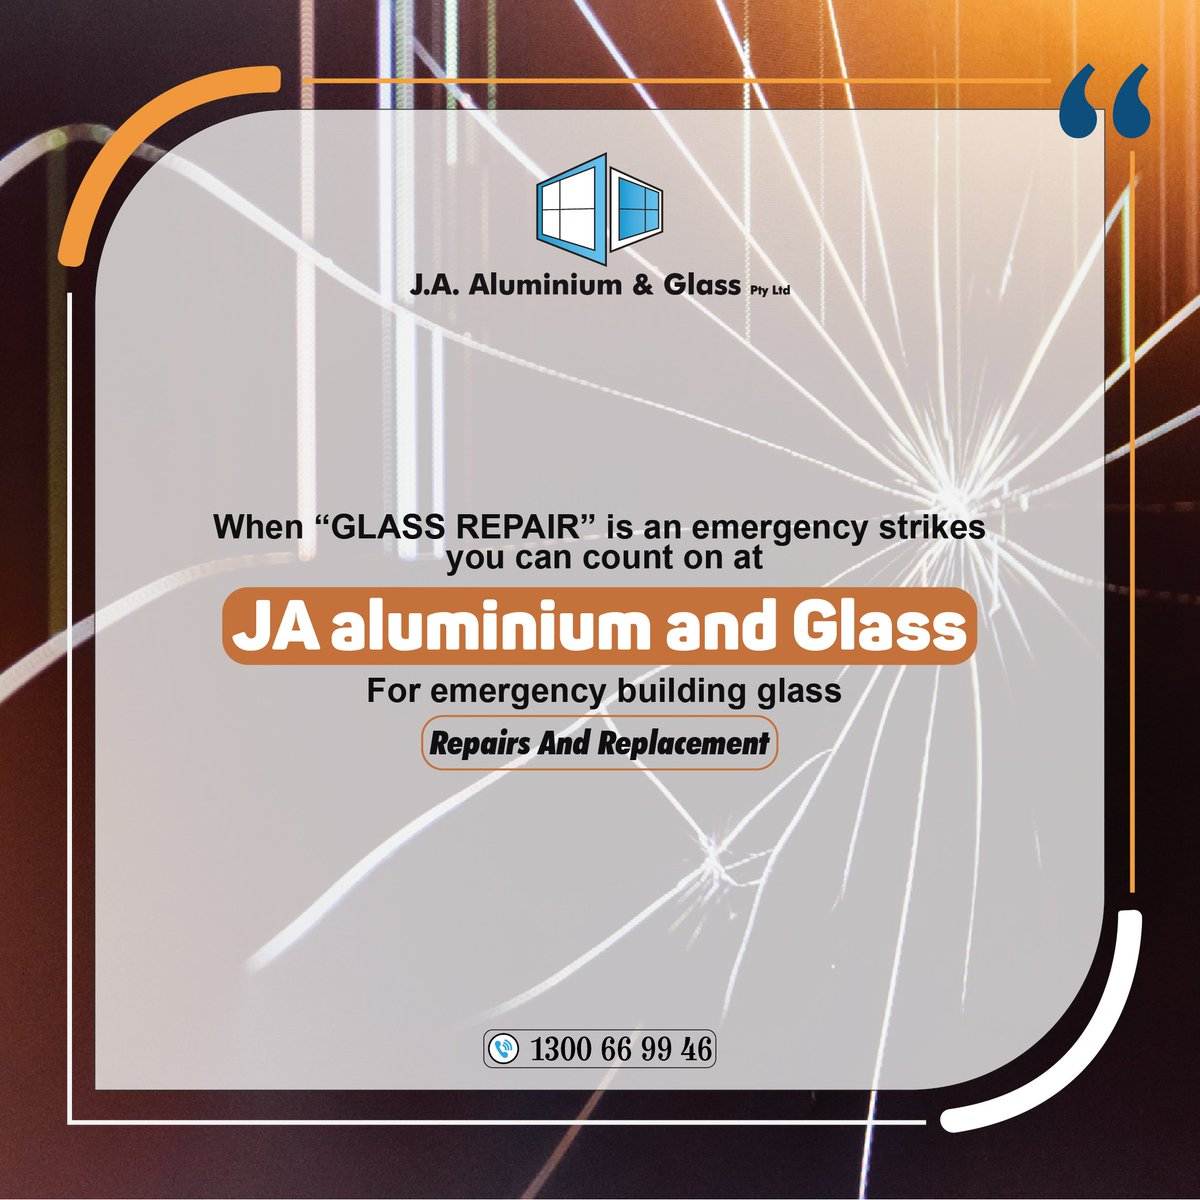 """When """"Glass Repair"""" is an emergency strikes you can count on at JA Aluminium and Glass For Emergency Building Glass Repairs And Replacementhttps://www.jaaluminiumglass.com.au/CONTACT US For Any Query: Call. 24/71300 66 99 46 . 0498 626 666#windows #aluminium #doors #workout #designs"""